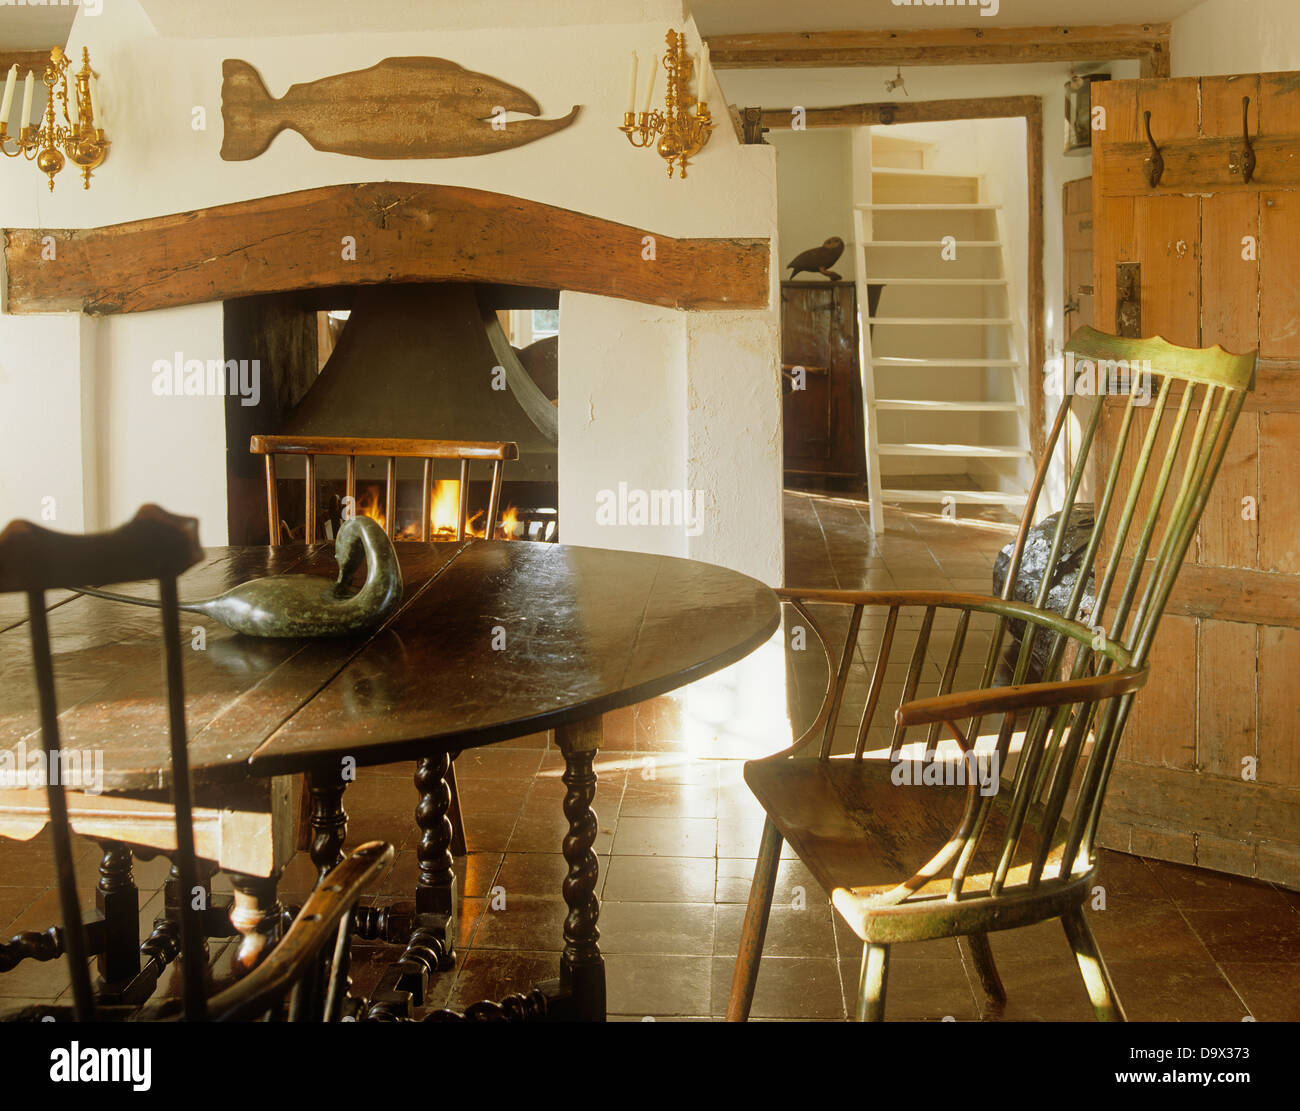 Antique oak table and stick back chairs in country dining room with rustic  wooden fish and beam above fireplace - Antique Oak Table And Stick Back Chairs In Country Dining Room With